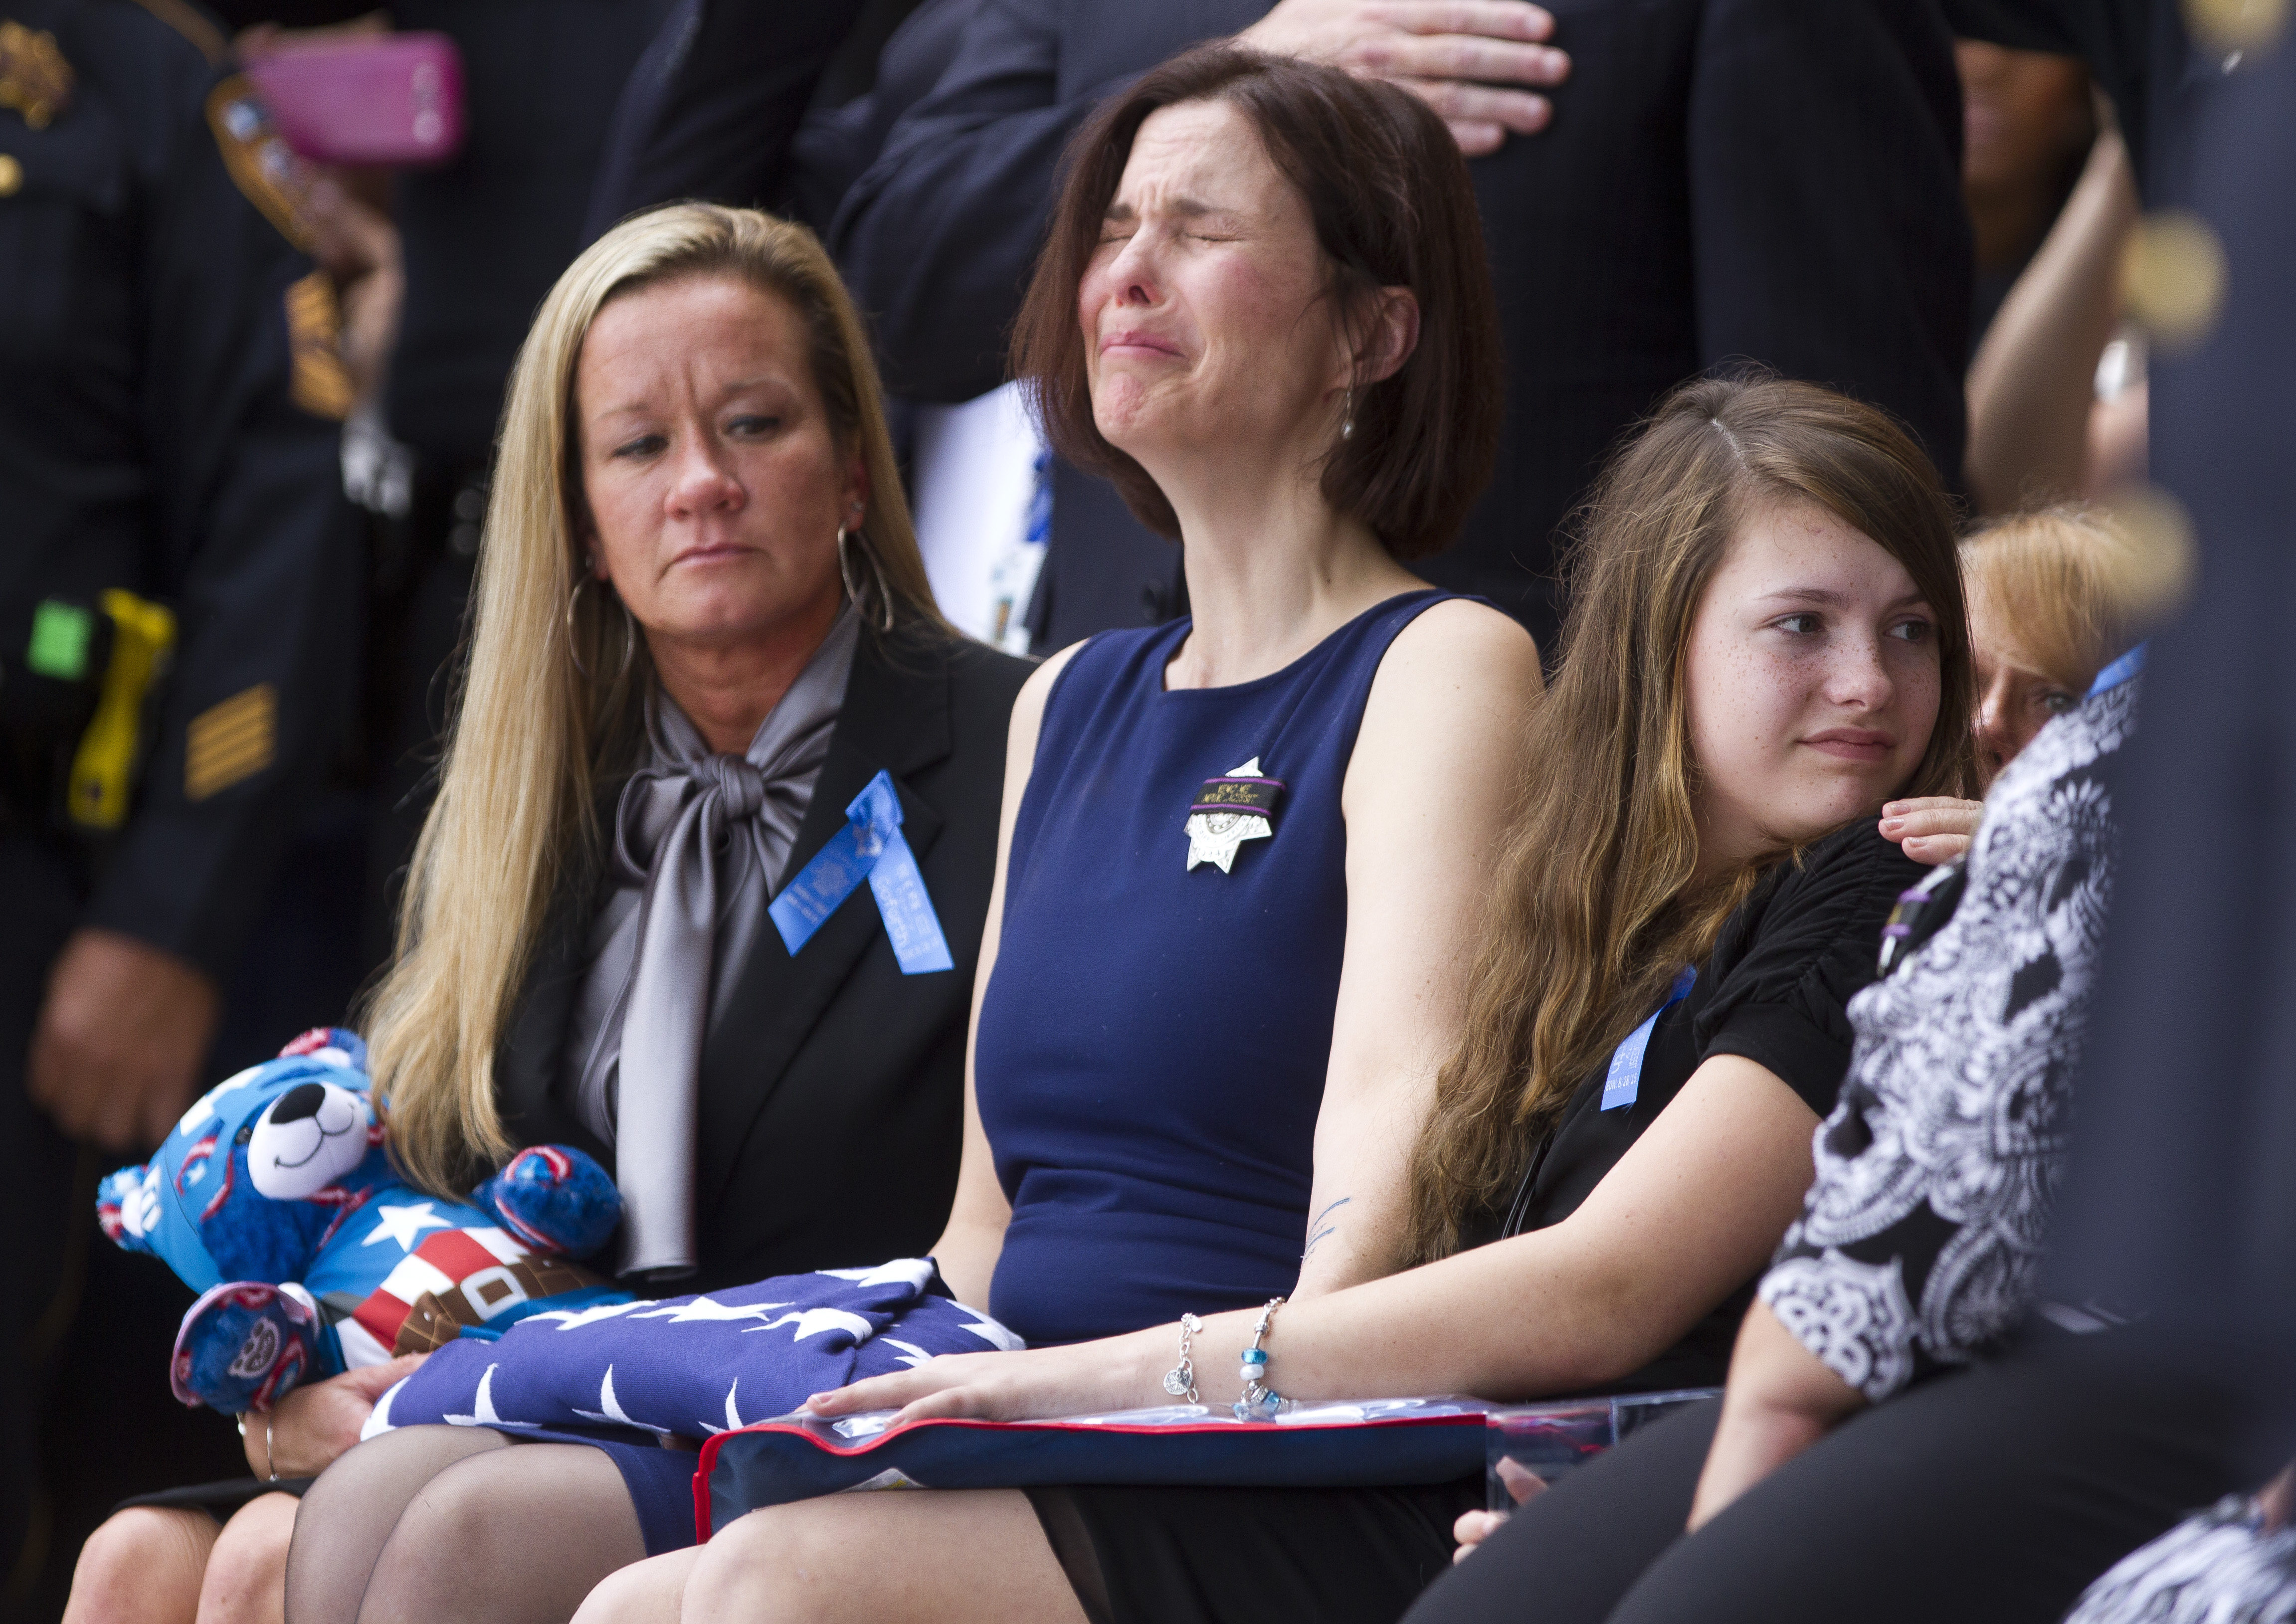 Kathleen Goforth, center, reacts as a 21-gun salute sounds off during the funeral service for her husband Harris County Sheriff's Deputy Darren Goforth at Second Baptist Church in Houston on Sept. 4, 2015